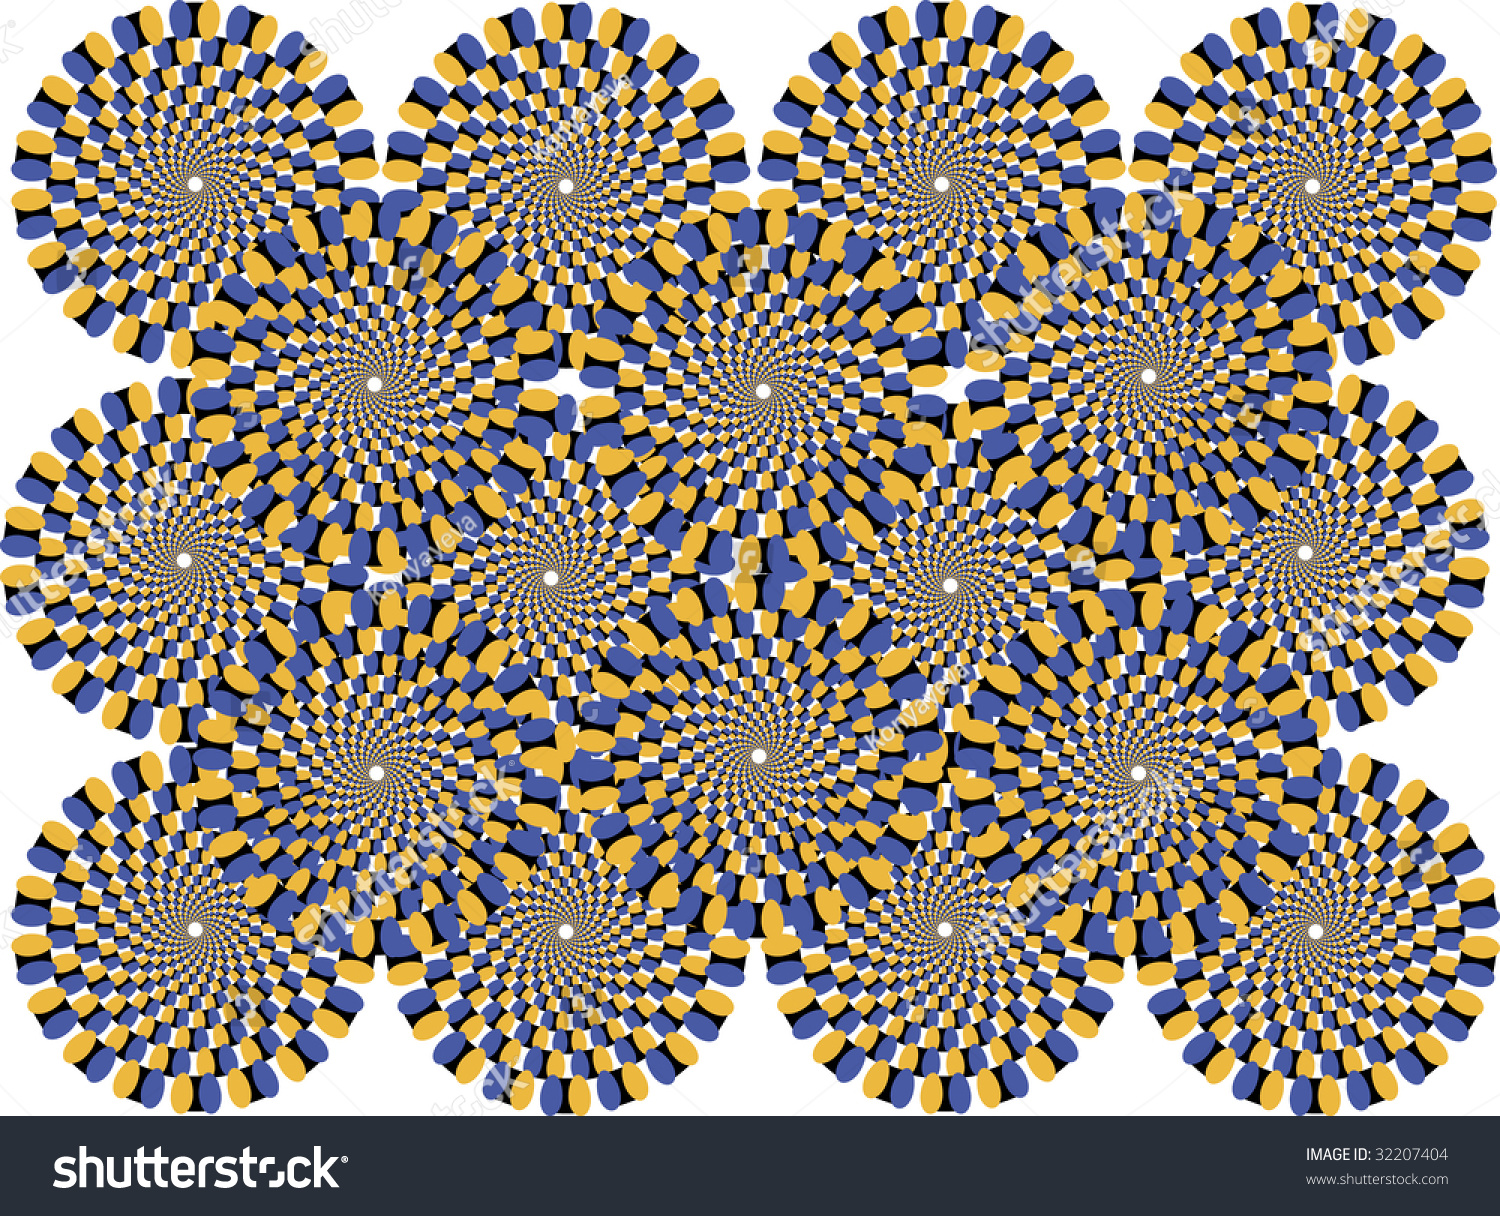 Colored Circles Represent The Effect Of Motion Stock ...